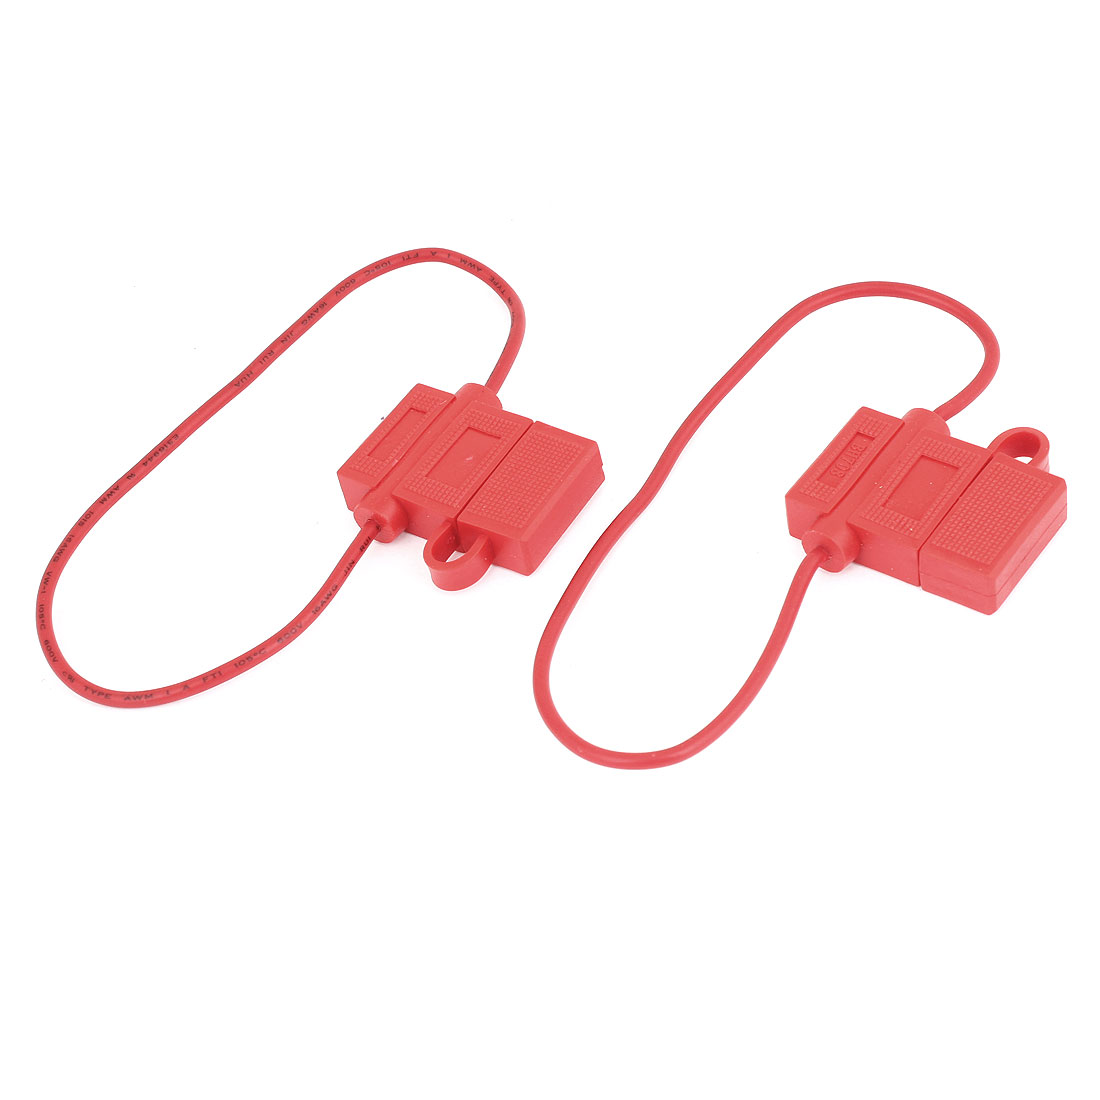 2 x Car Boat Truck 16 AWG Wire Blade Fuse Holder Red 32V 20A BH708